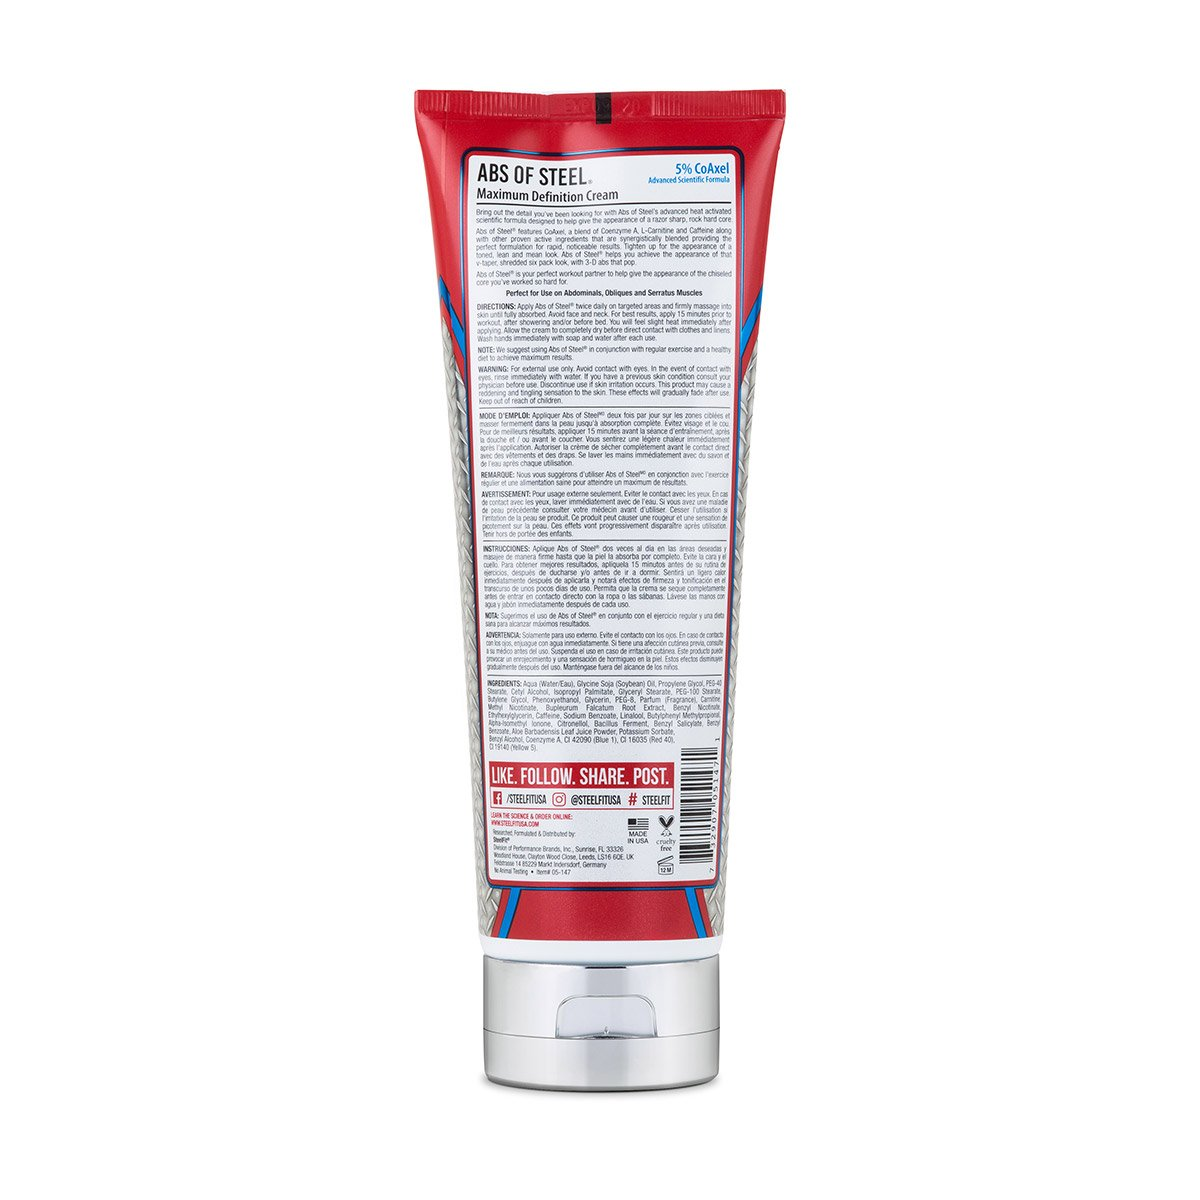 SteelFit Abs of Steel Maximum Definition Cream with 5% Coaxel, 8 fl oz (237ml). by SteelFit (Image #2)